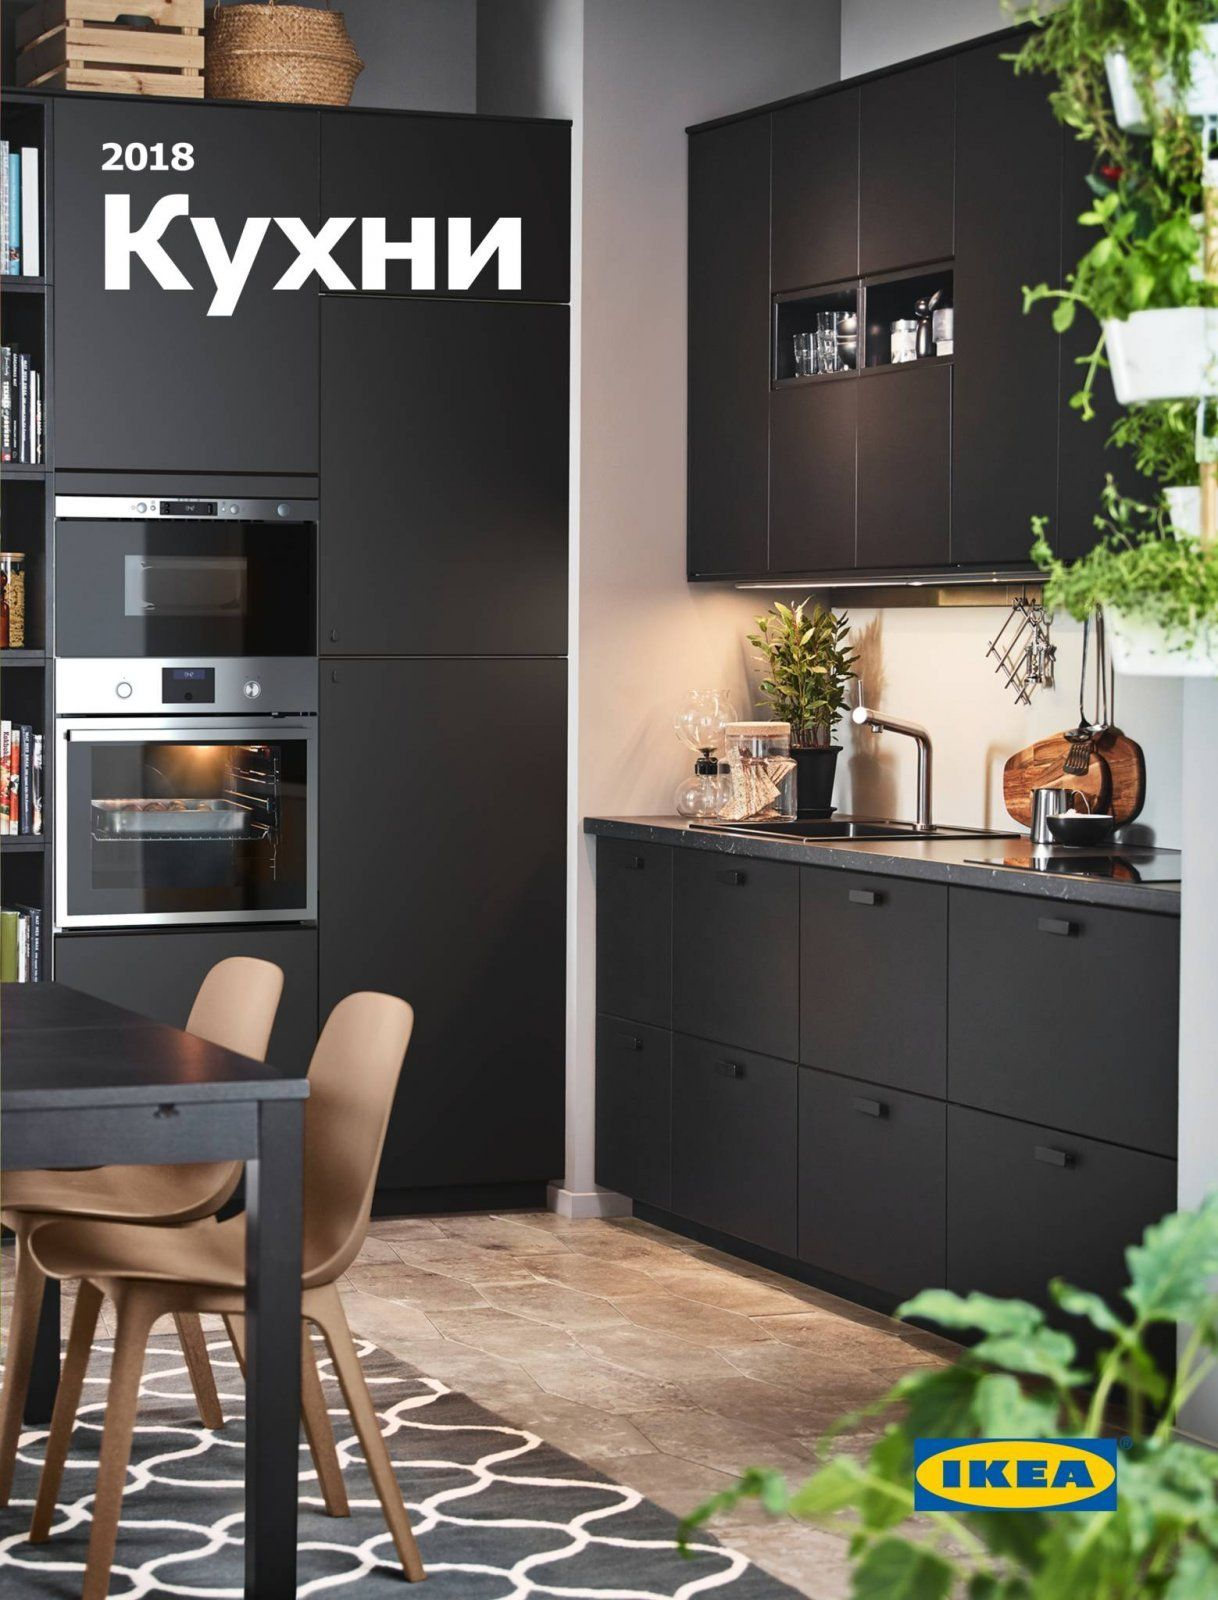 Ikea Family Küche ИКЕА брошура до 31 12 58417 Broshura Bg Home Design Interior